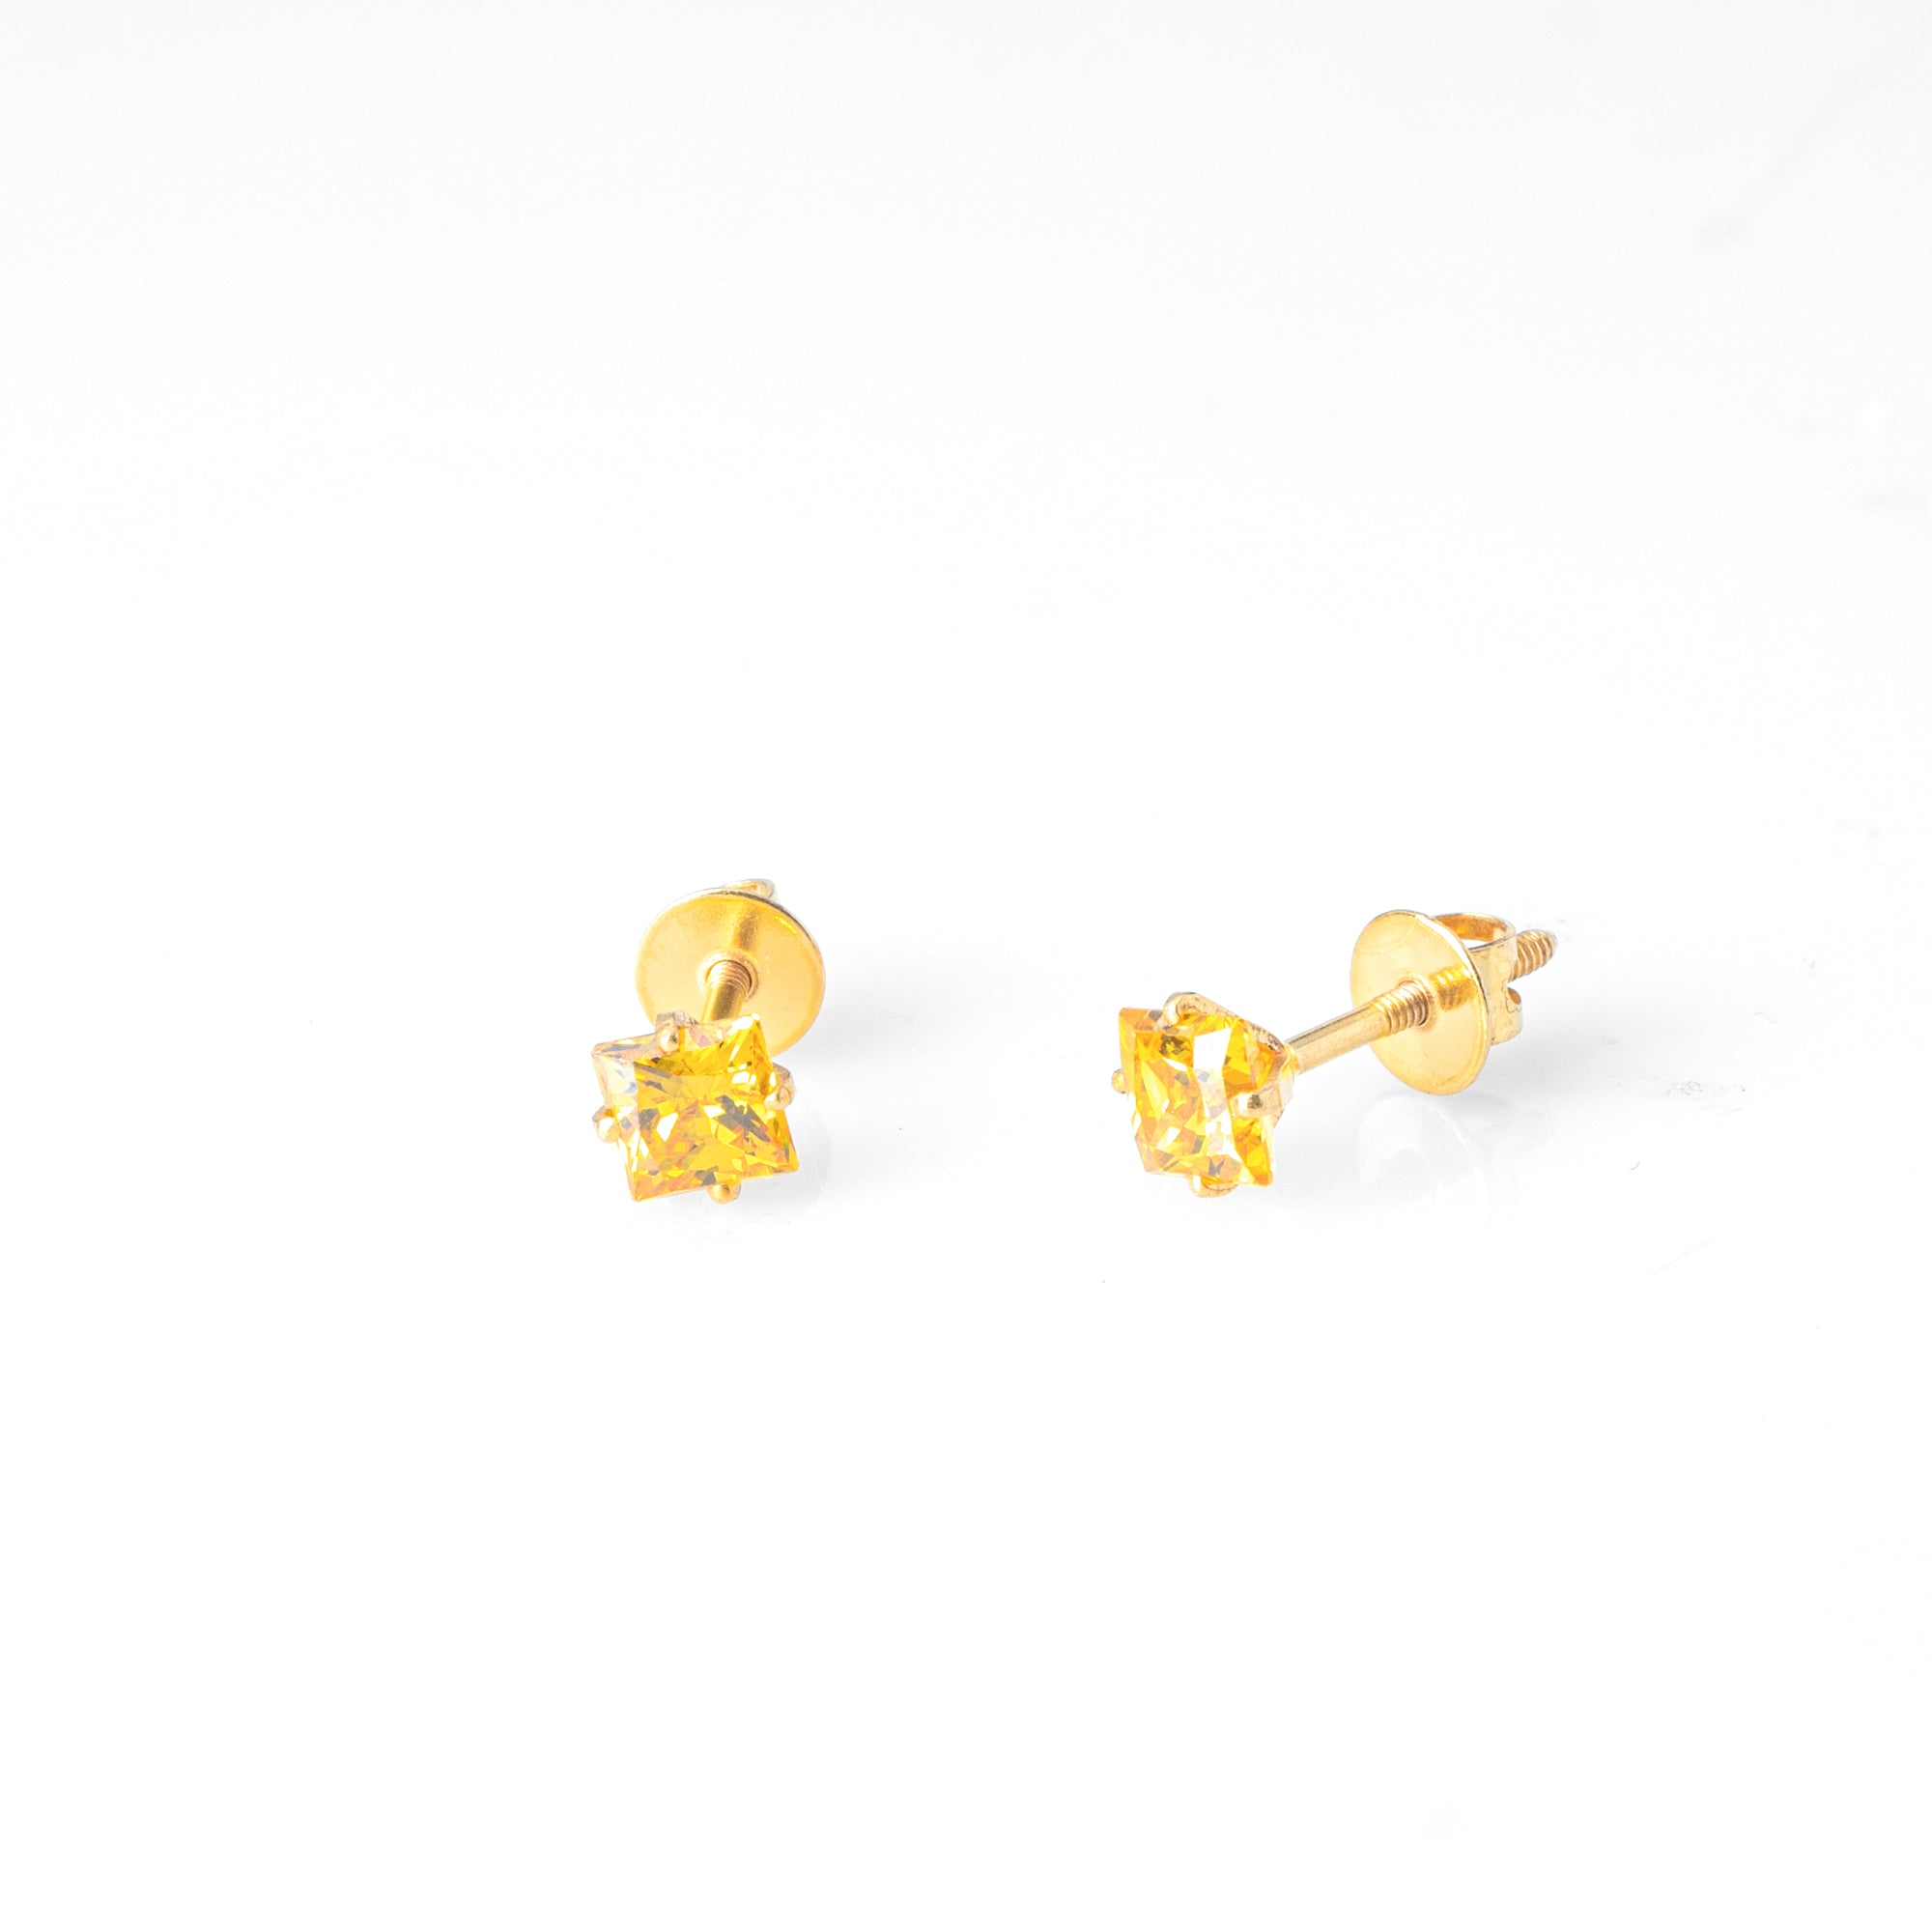 18ct Yellow Gold (with 22ct Gold Plating) Ear Studs set with Princess Cut Colour Cubic Zirconias